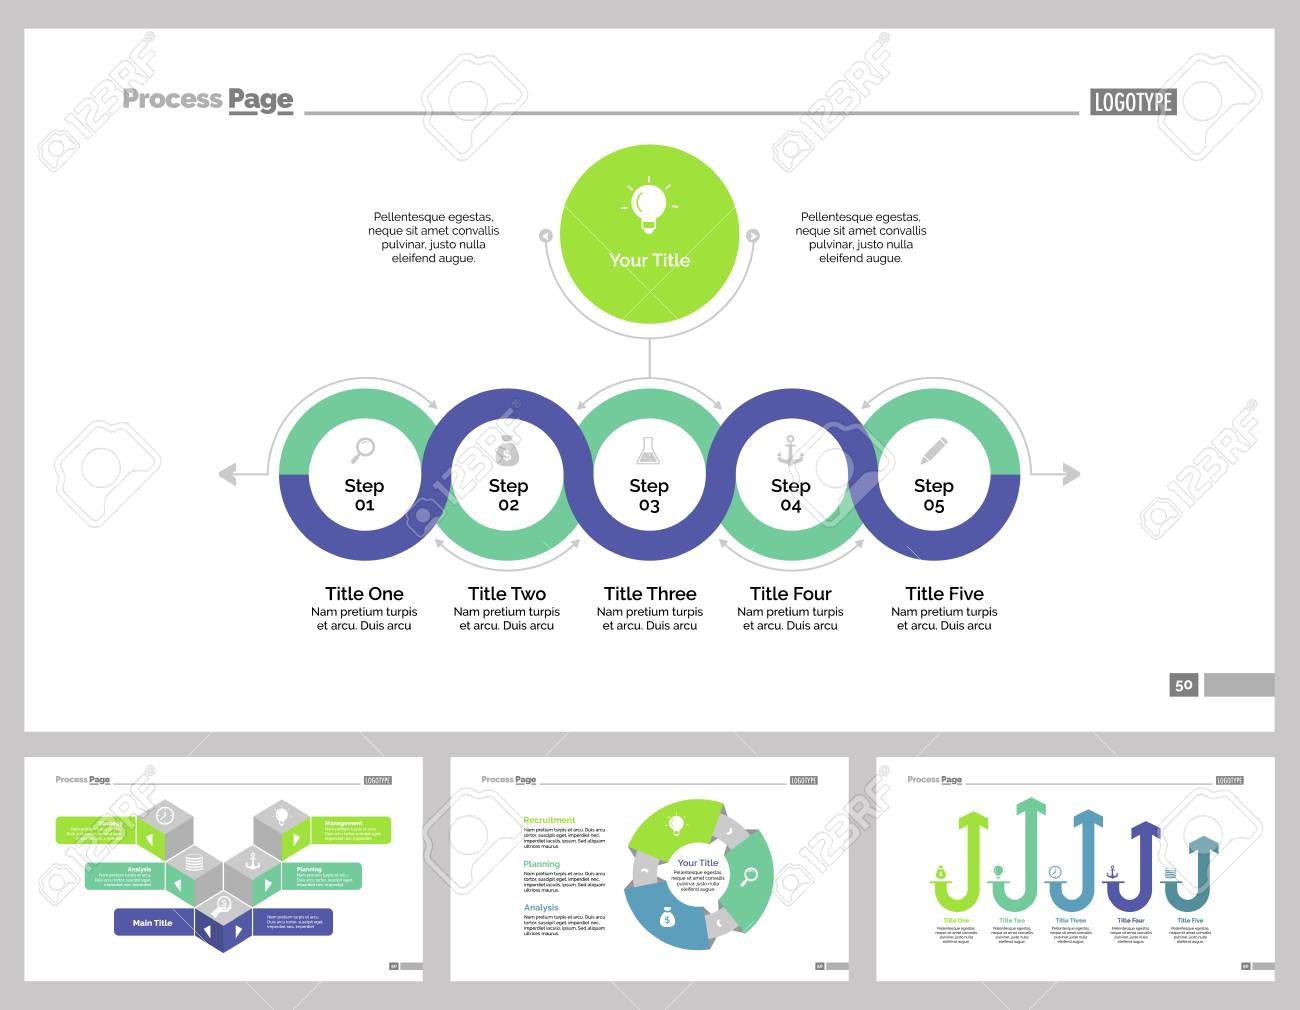 Web Design Process Flow Chart Diagram Layout Photo Stock Vector Infographic Set Can Be Used For Workflow Annual Report Presentation